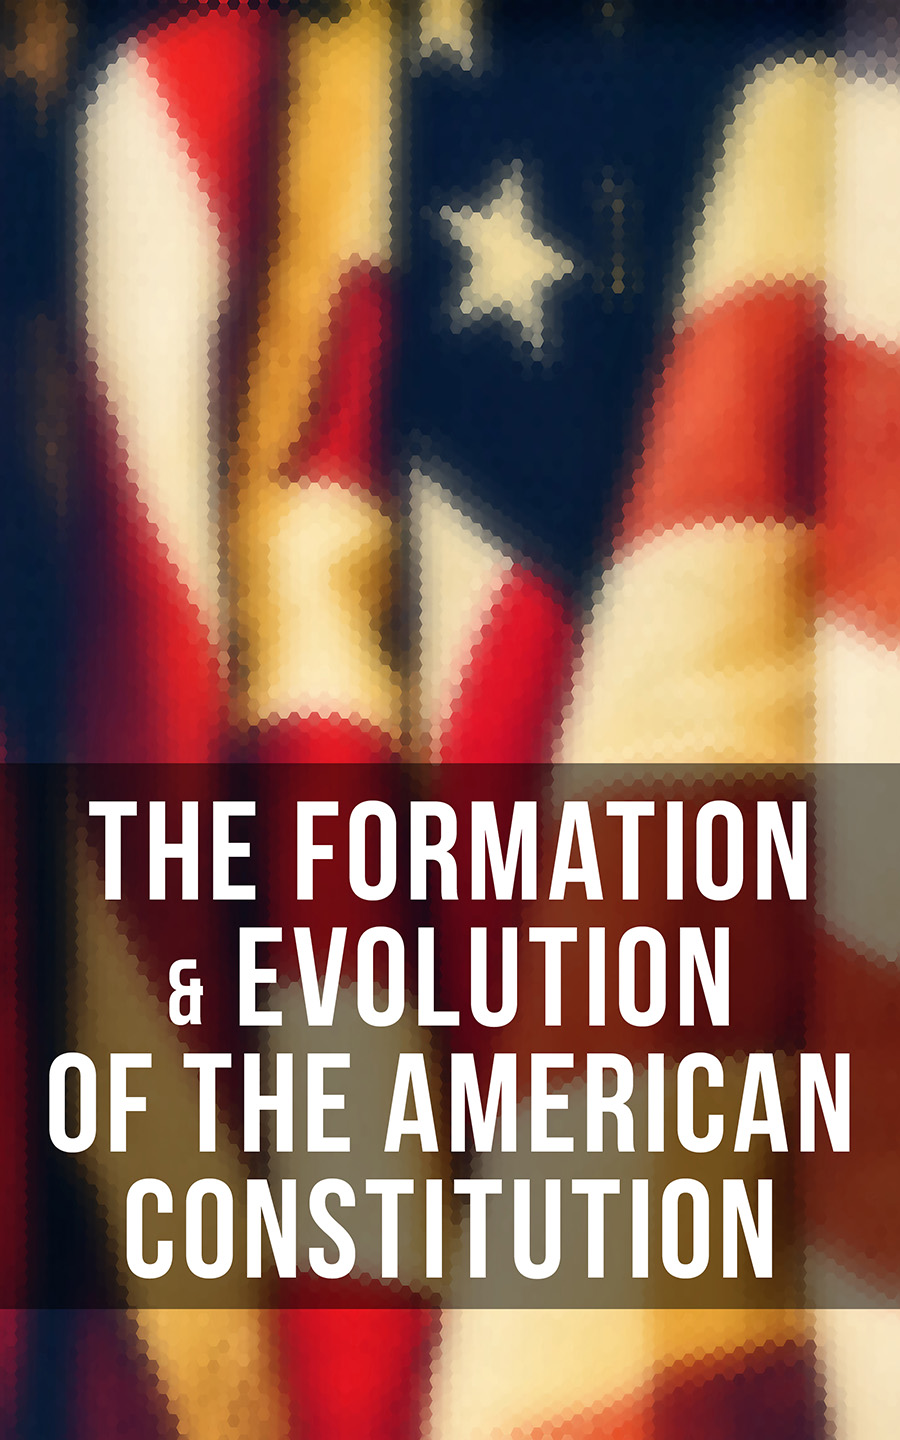 Madison James The Formation & Evolution of the American Constitution james madison cutts the conquest of california and new mexico